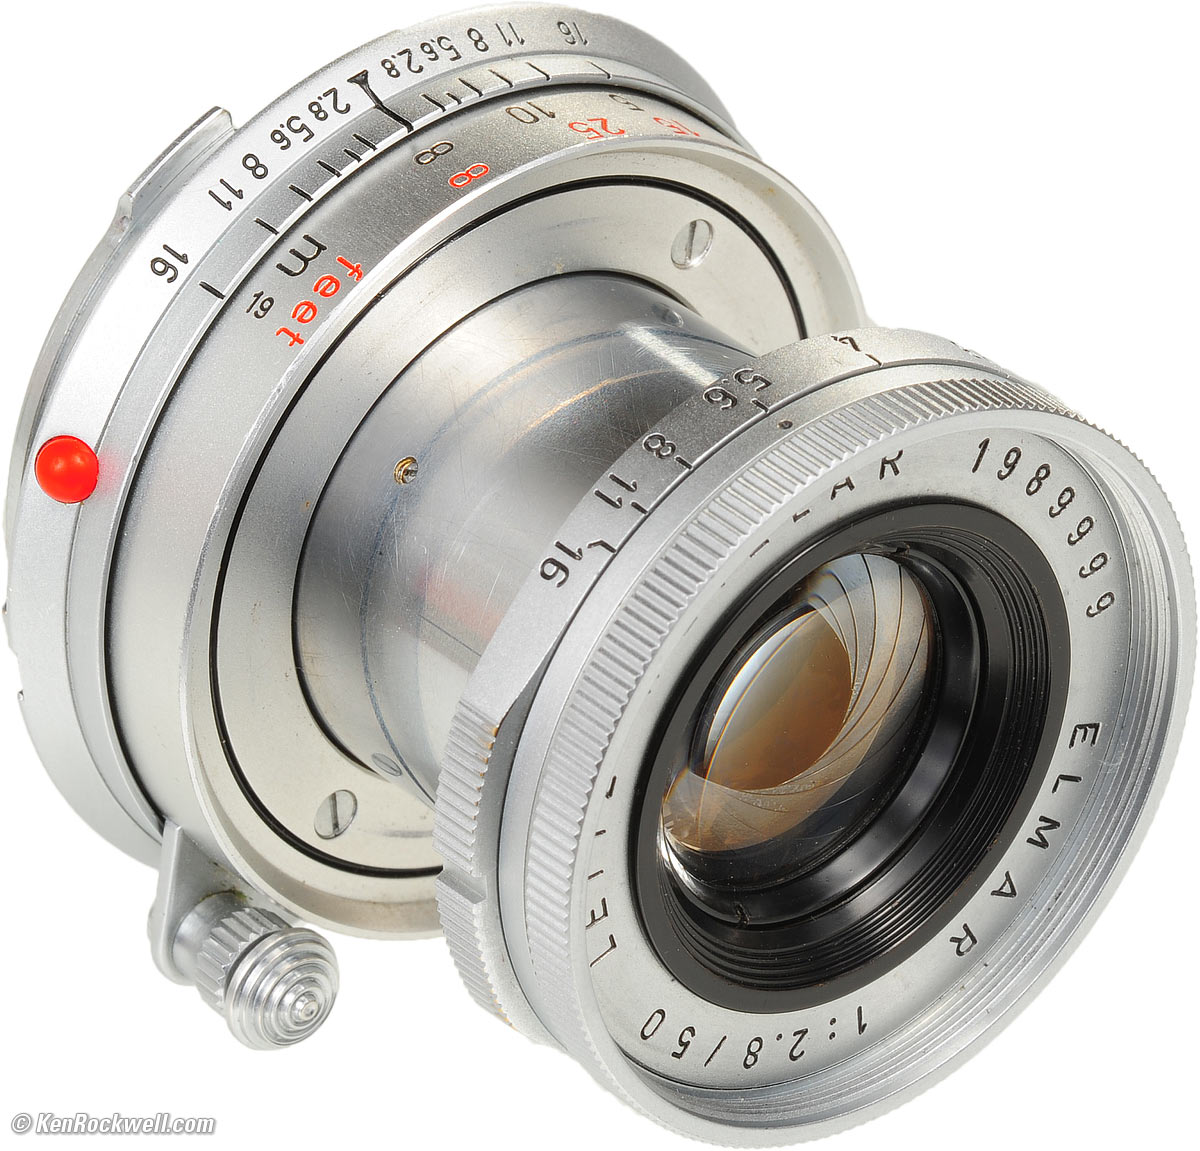 leica bond max user manual